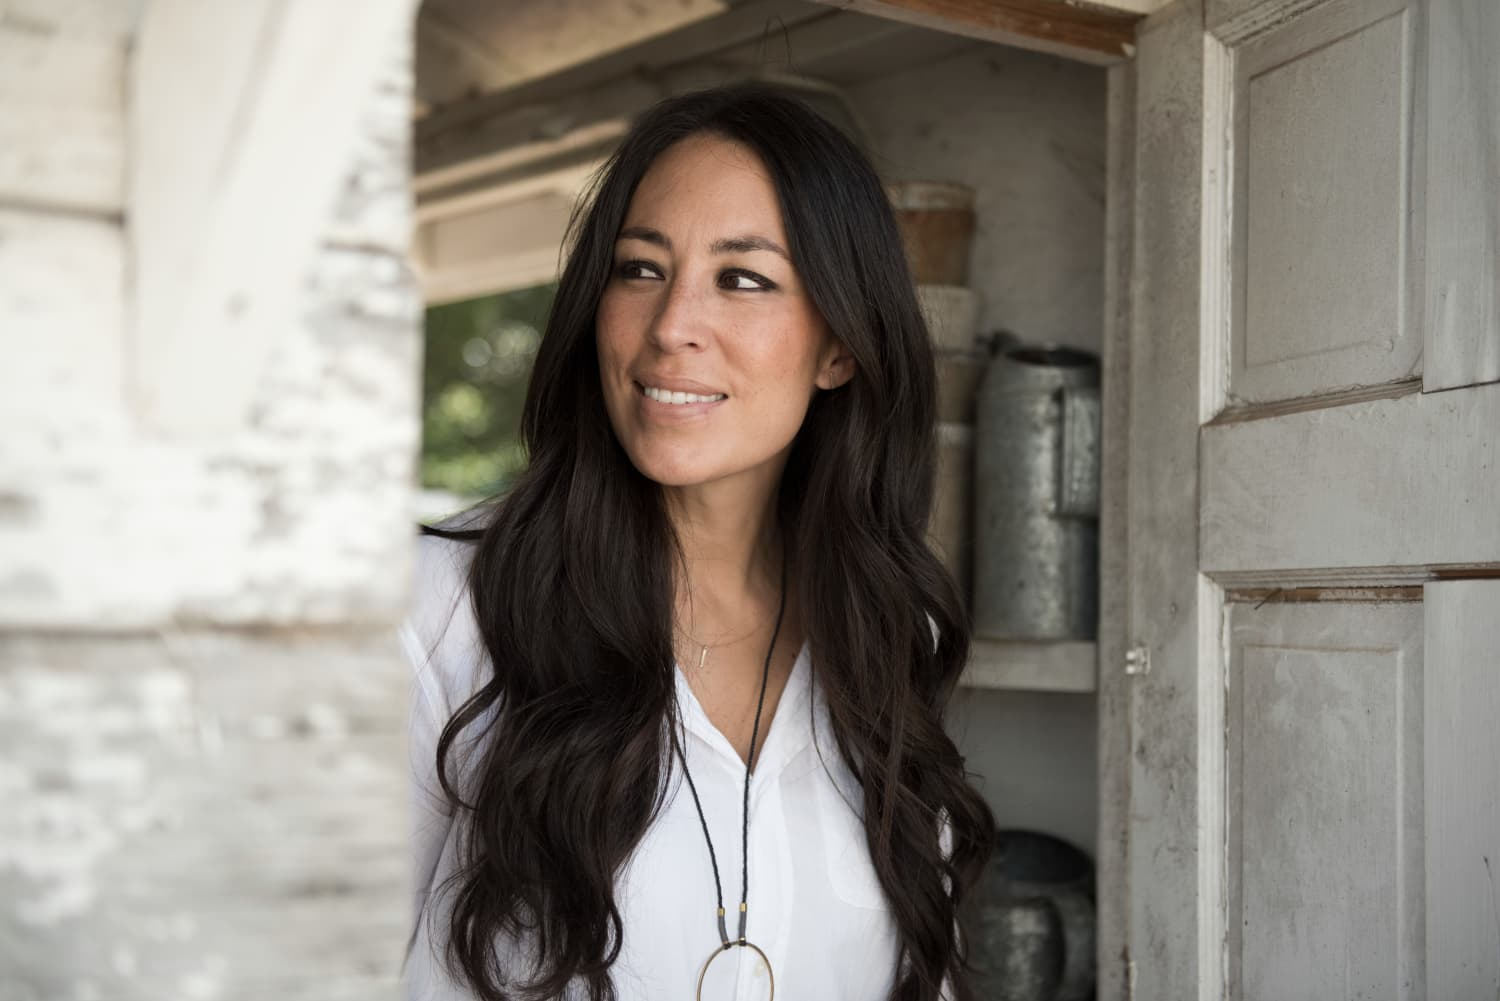 The One Trick Joanna Gaines Uses to Make Spaces Cohesive